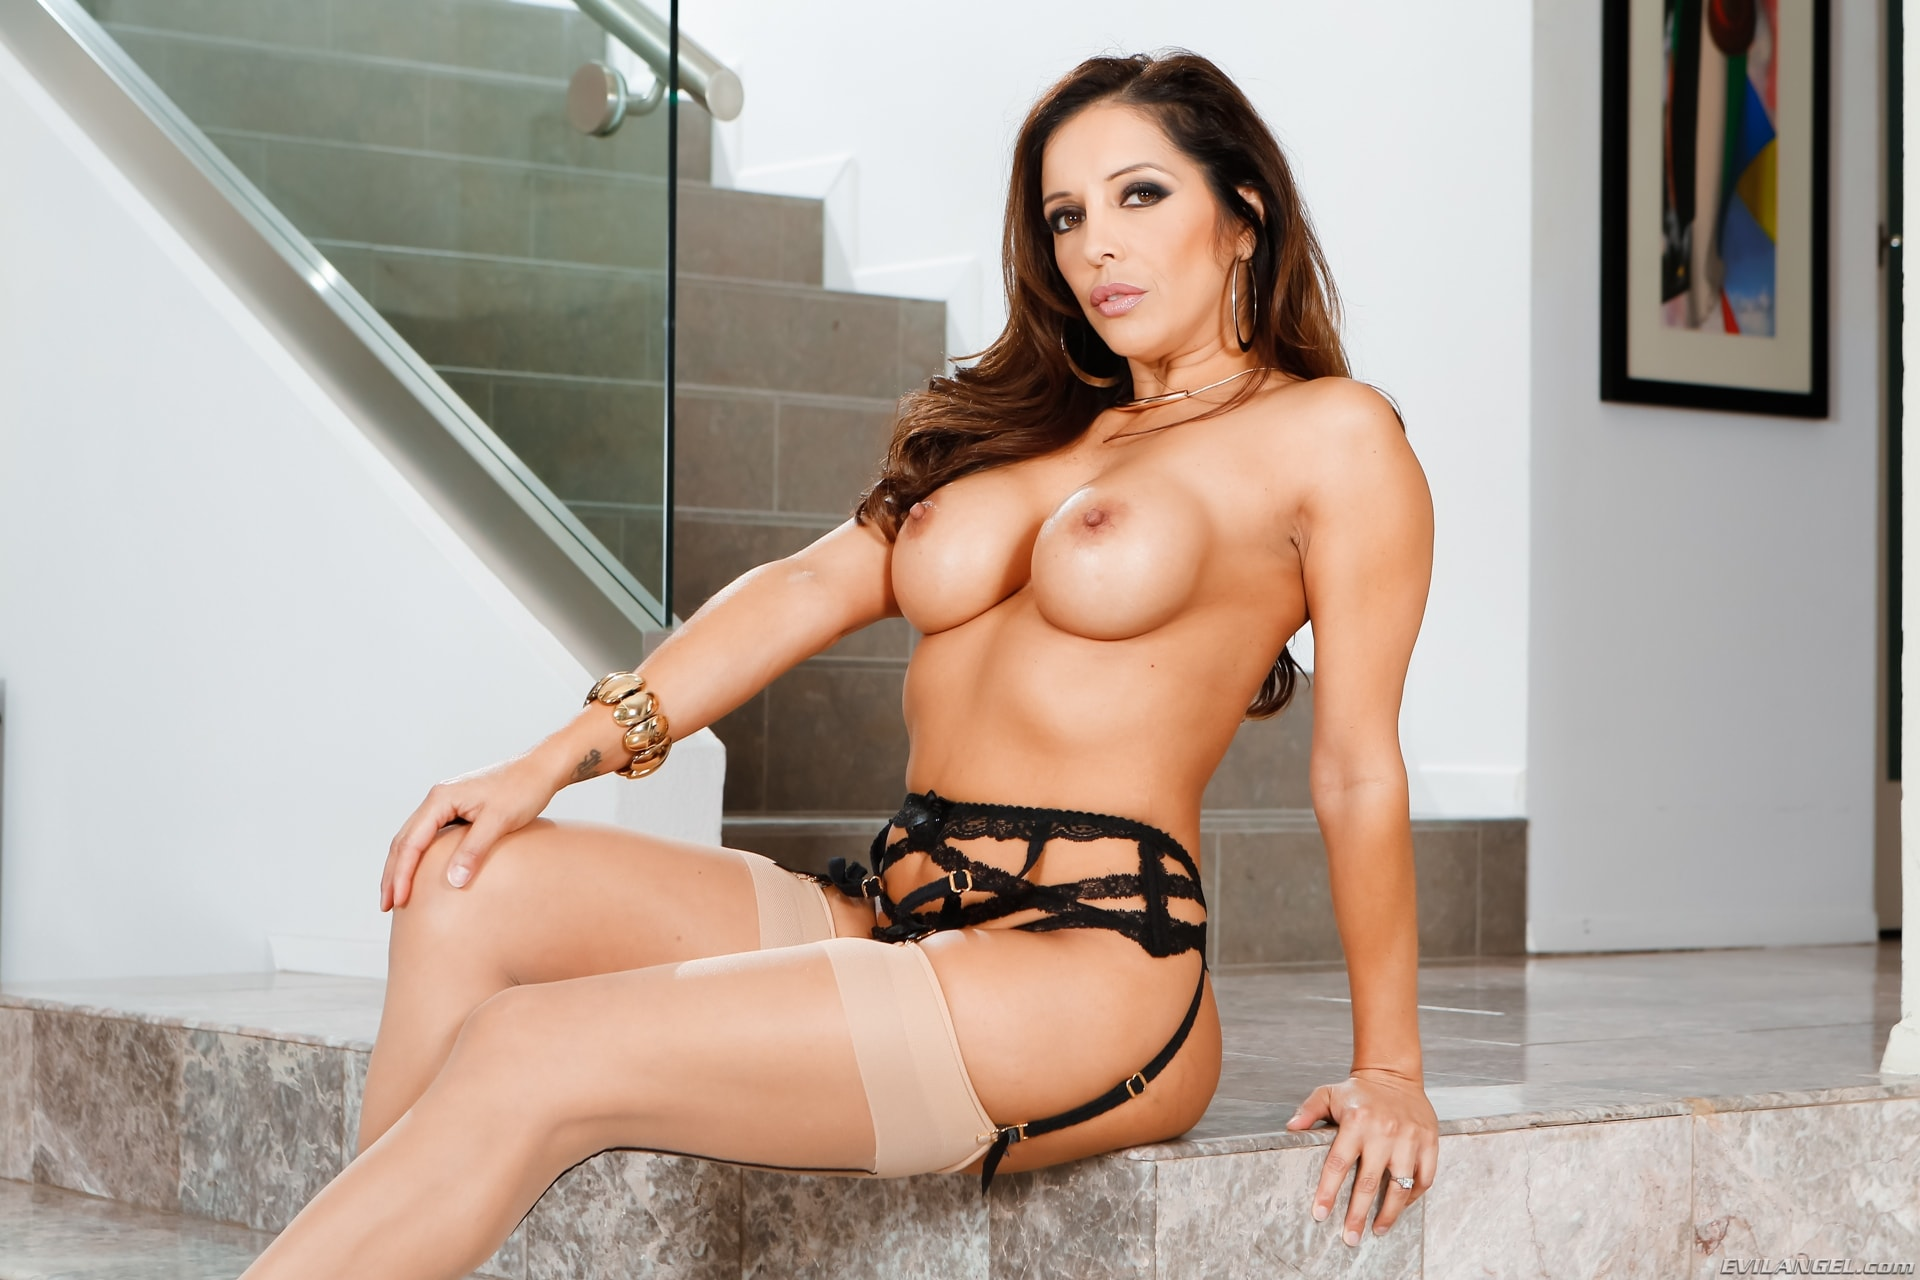 Evil Angel 'LeWood Gangbang: Battle Of The MILFs' starring Francesca Le (Photo 8)